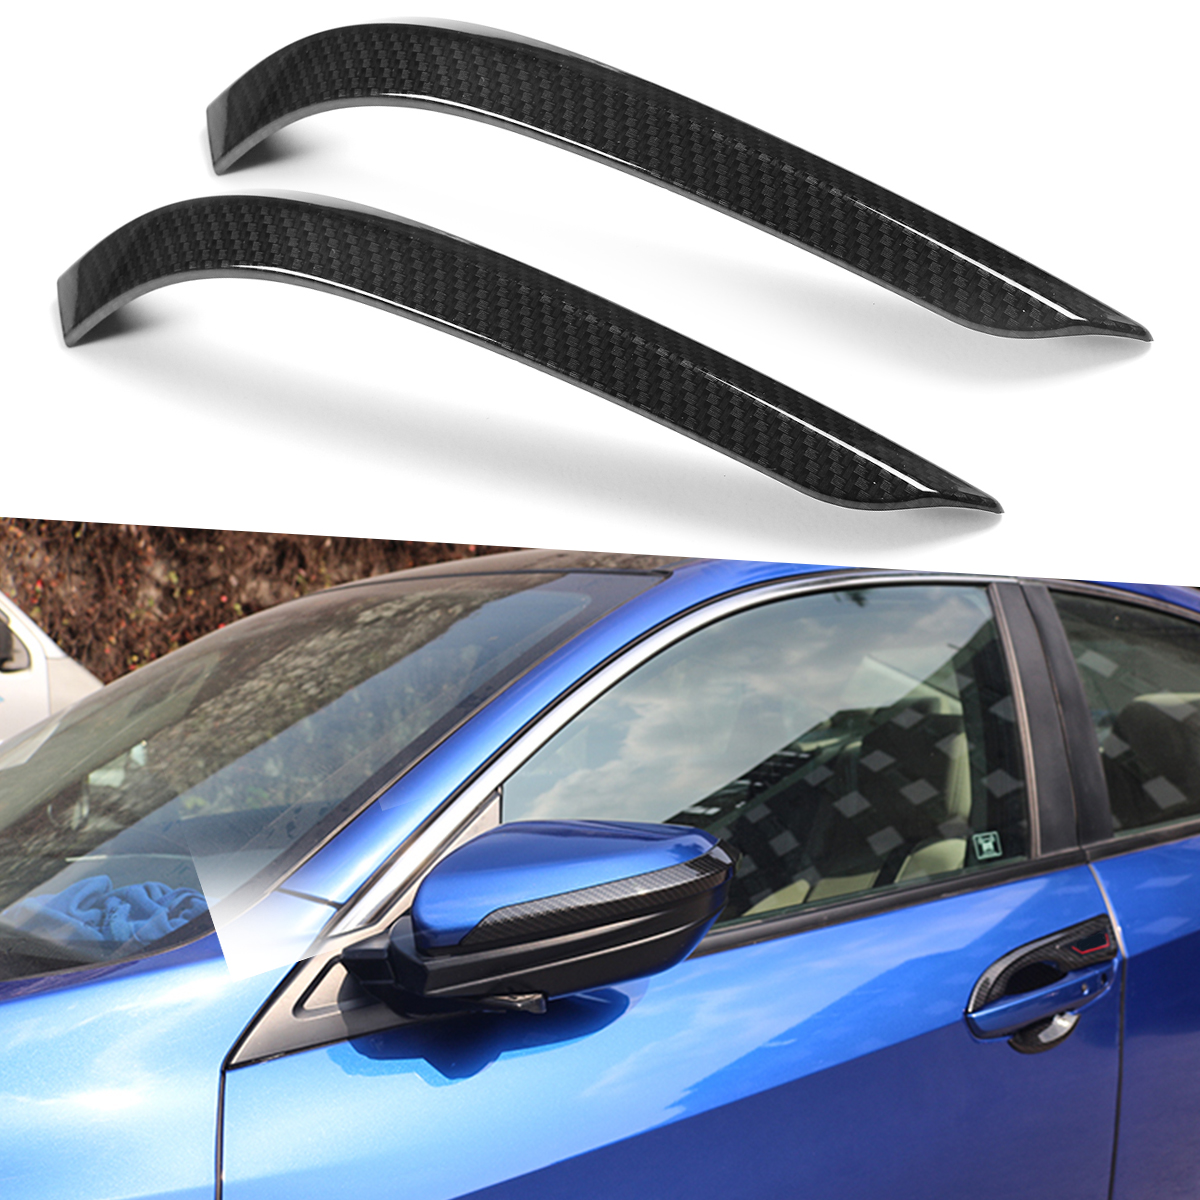 2 X Carbon Fiber Color Door Side Mirror Cover Car Decals Trim Fo